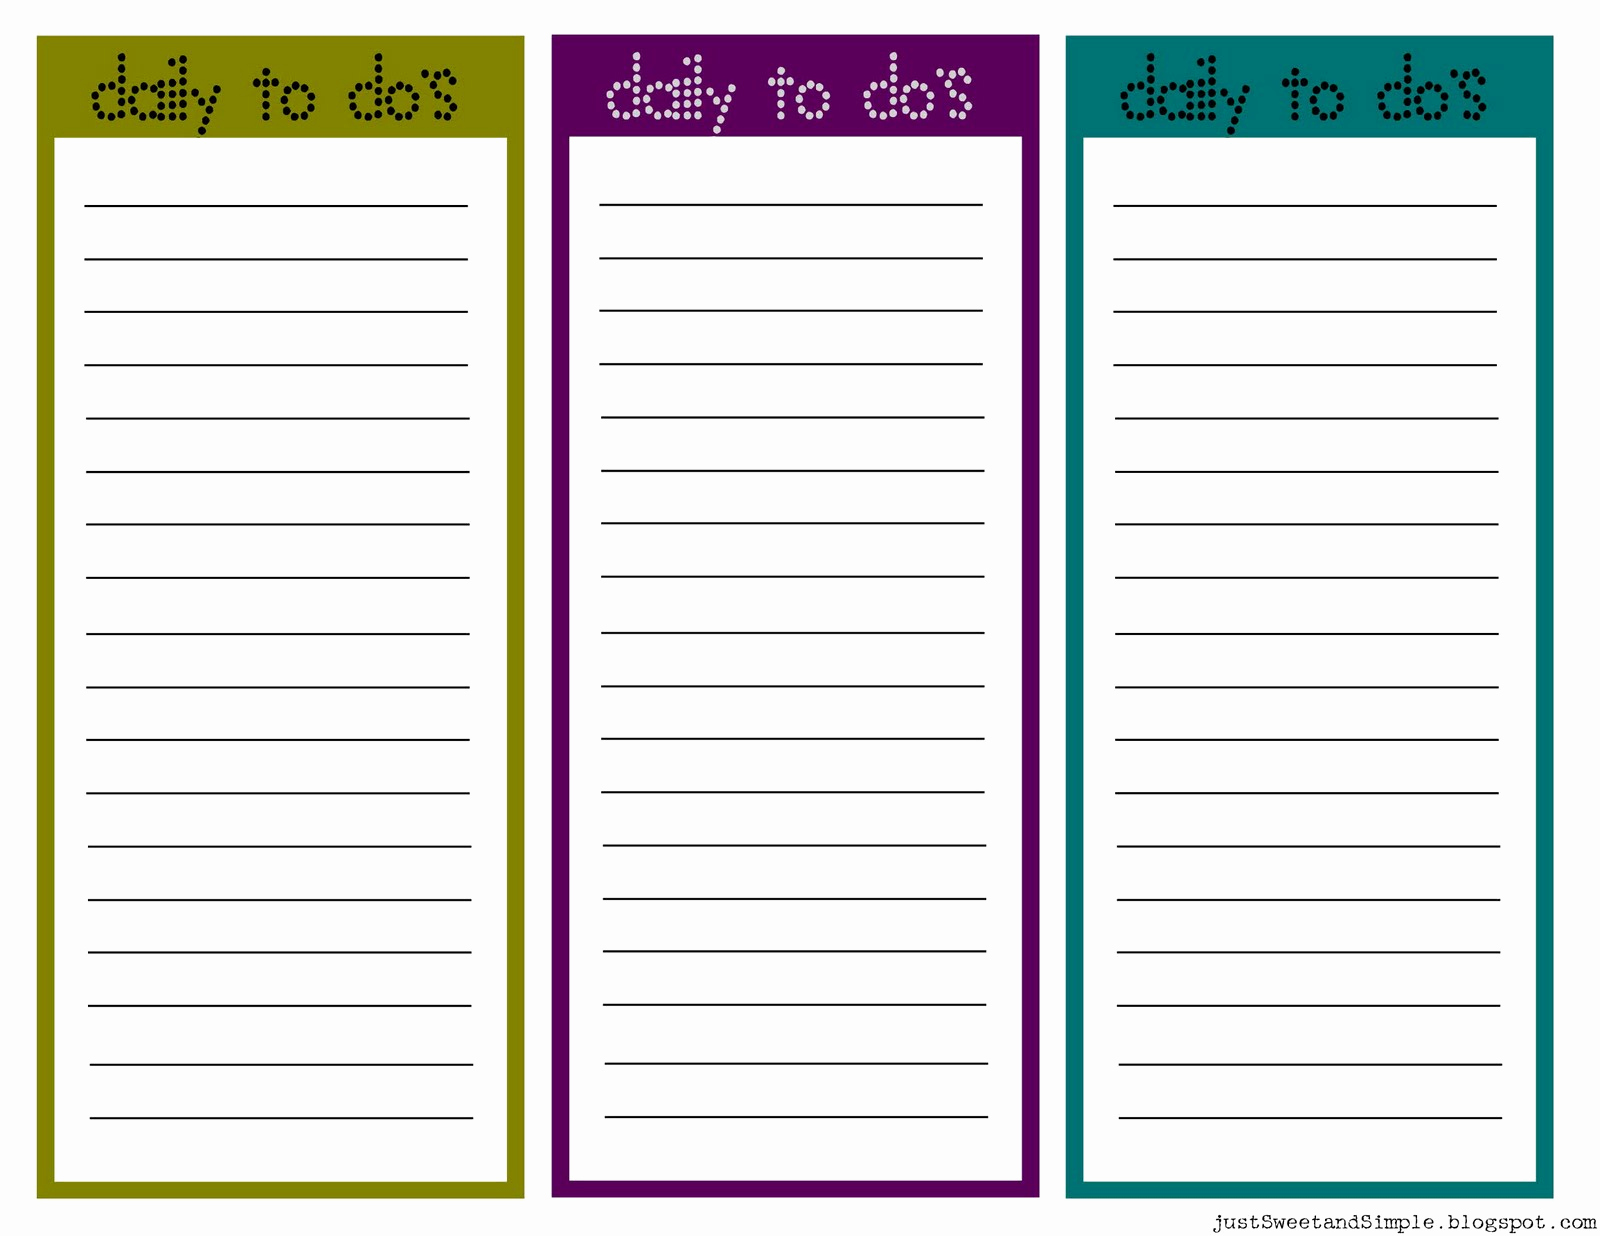 Daily todo List Template Awesome Just Sweet and Simple Printable Little Daily to Do List S